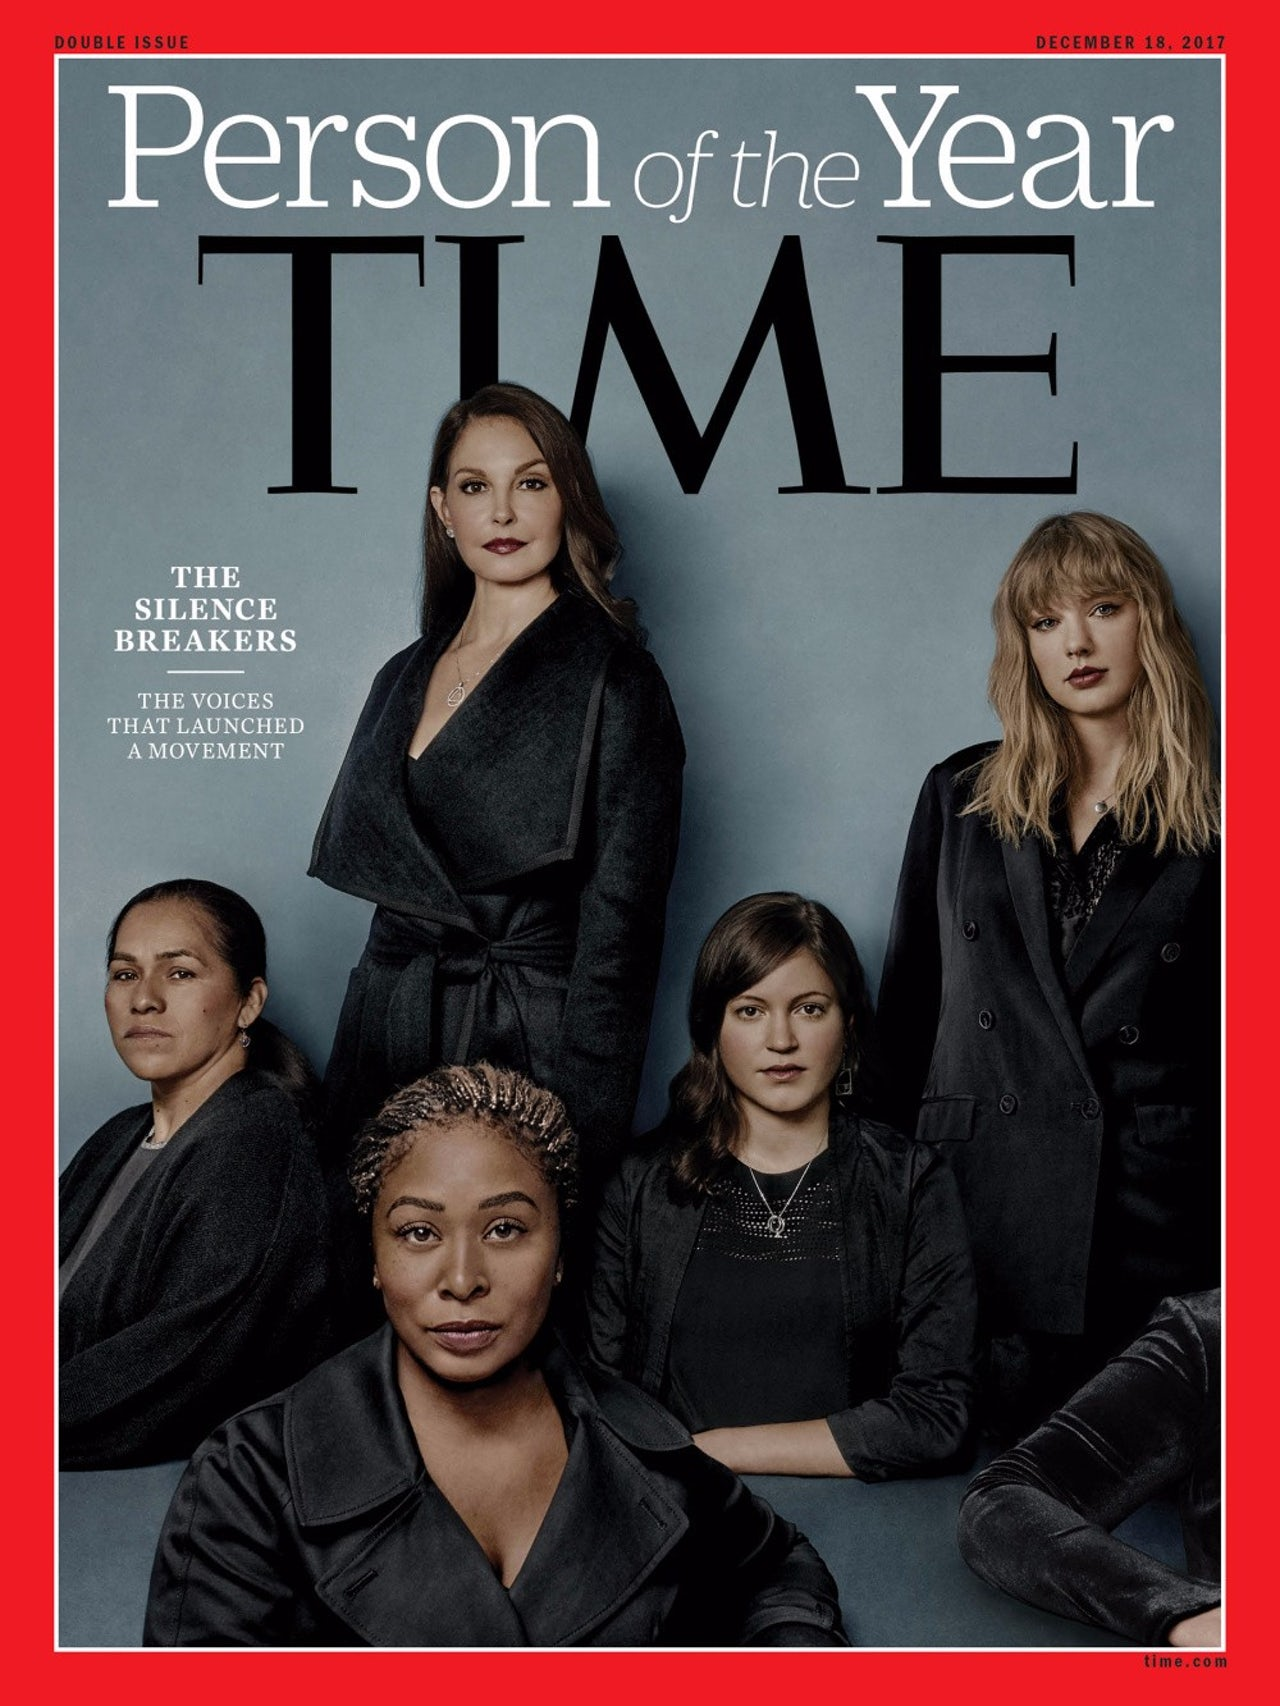 Time's 2017 Person of the Year cover